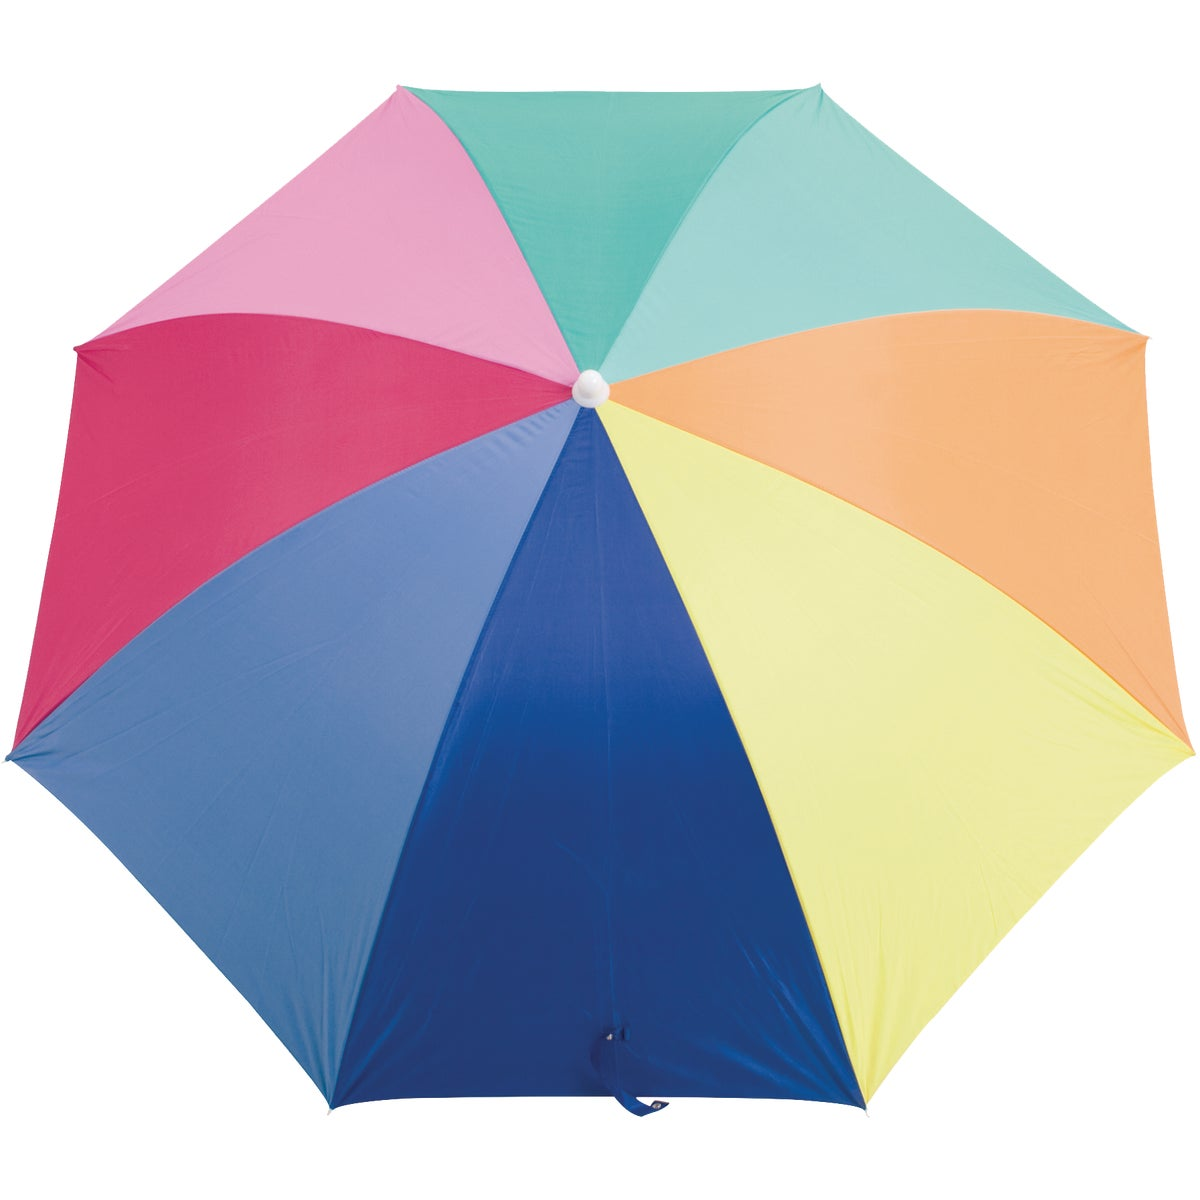 6' NYLON UMBRELLA